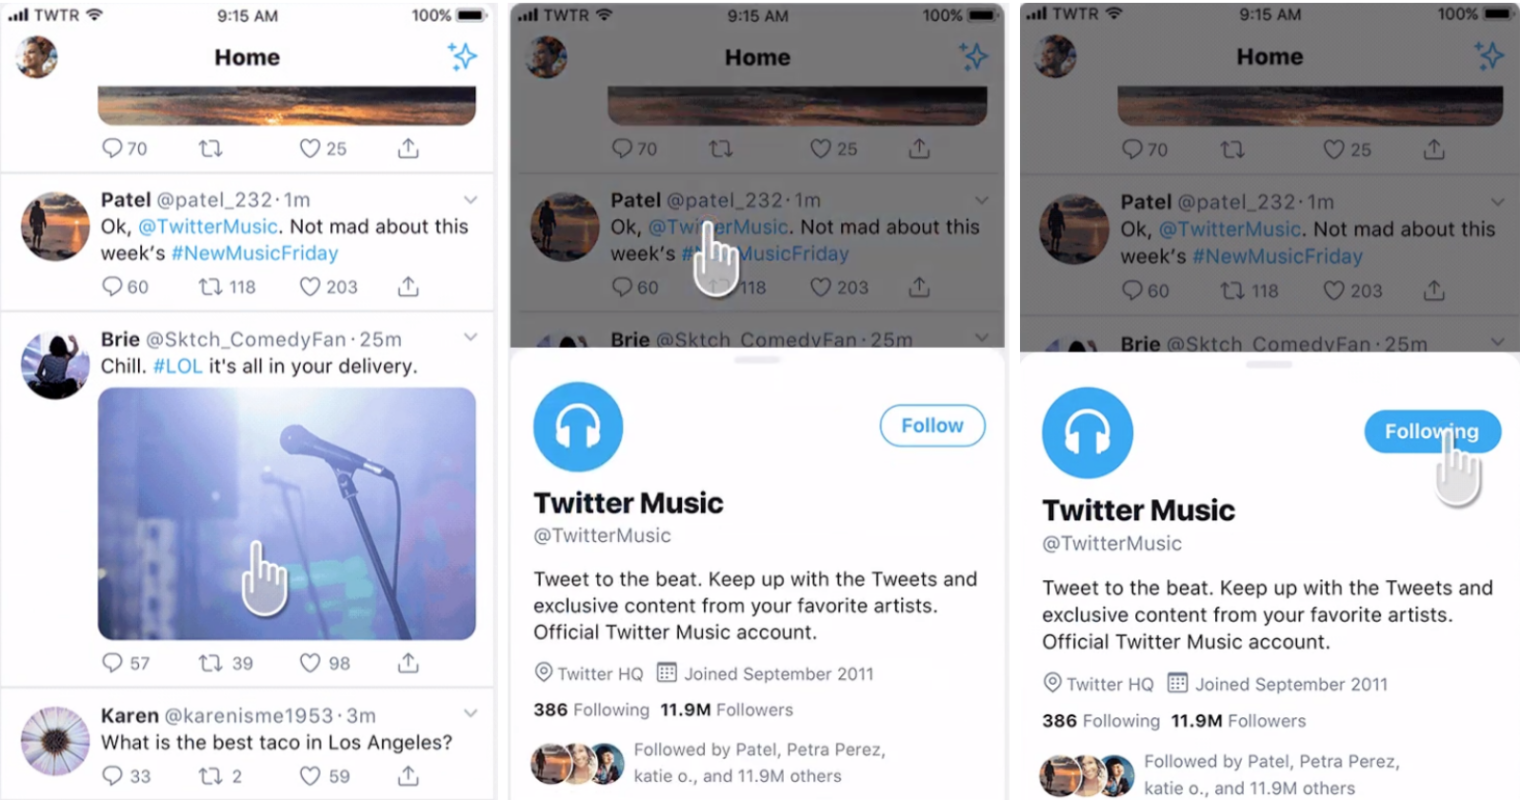 Twitter is Testing a New Way to View Users' Profiles